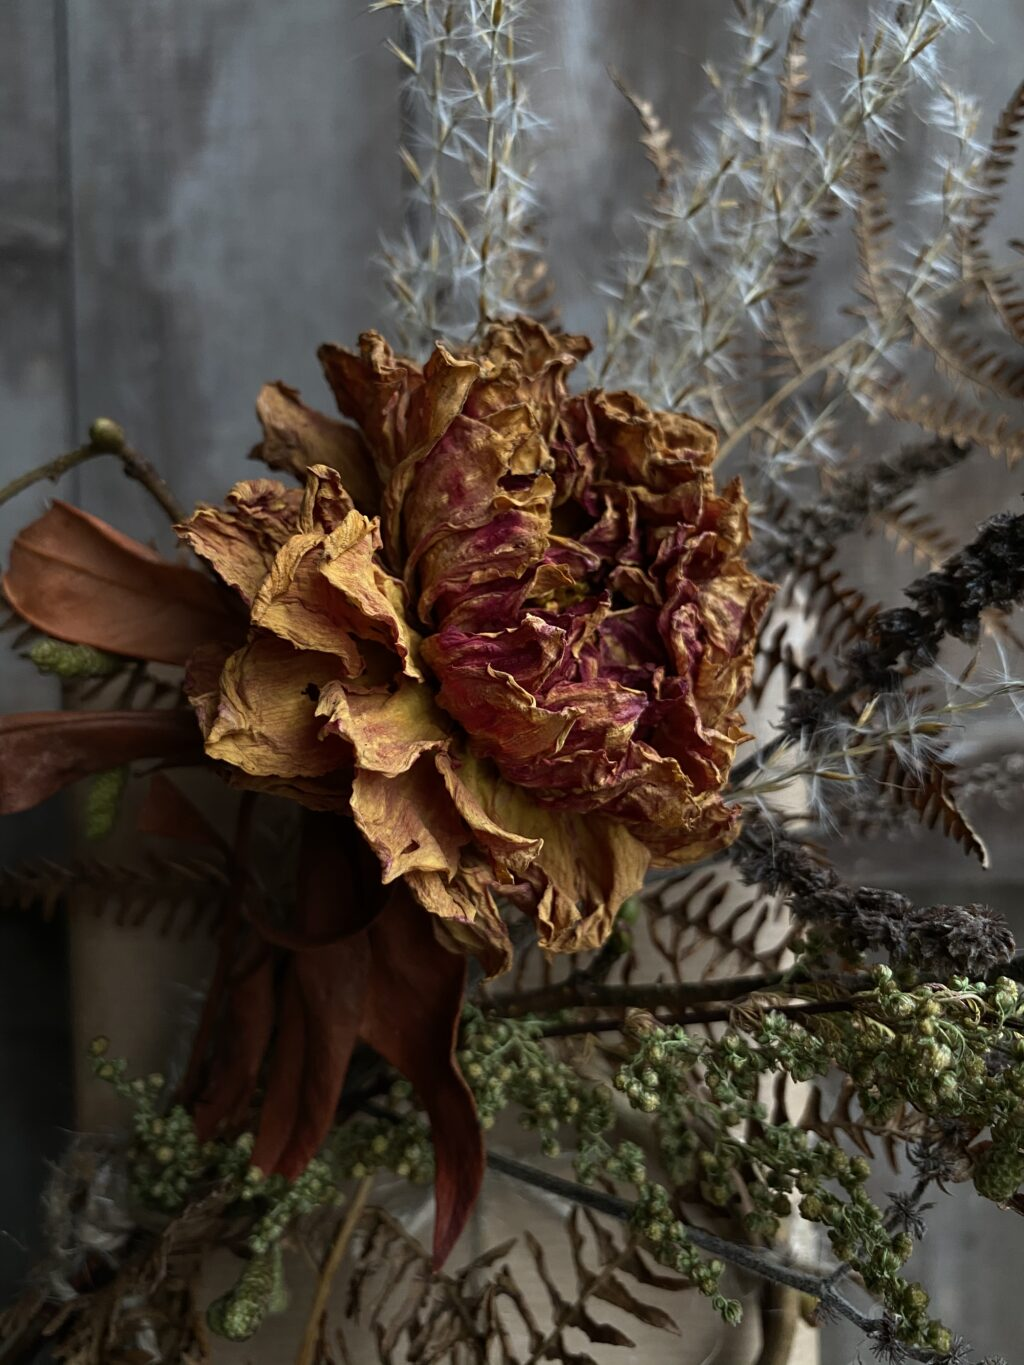 Dried dahlias mix well with other ingredients for winter arrangments.